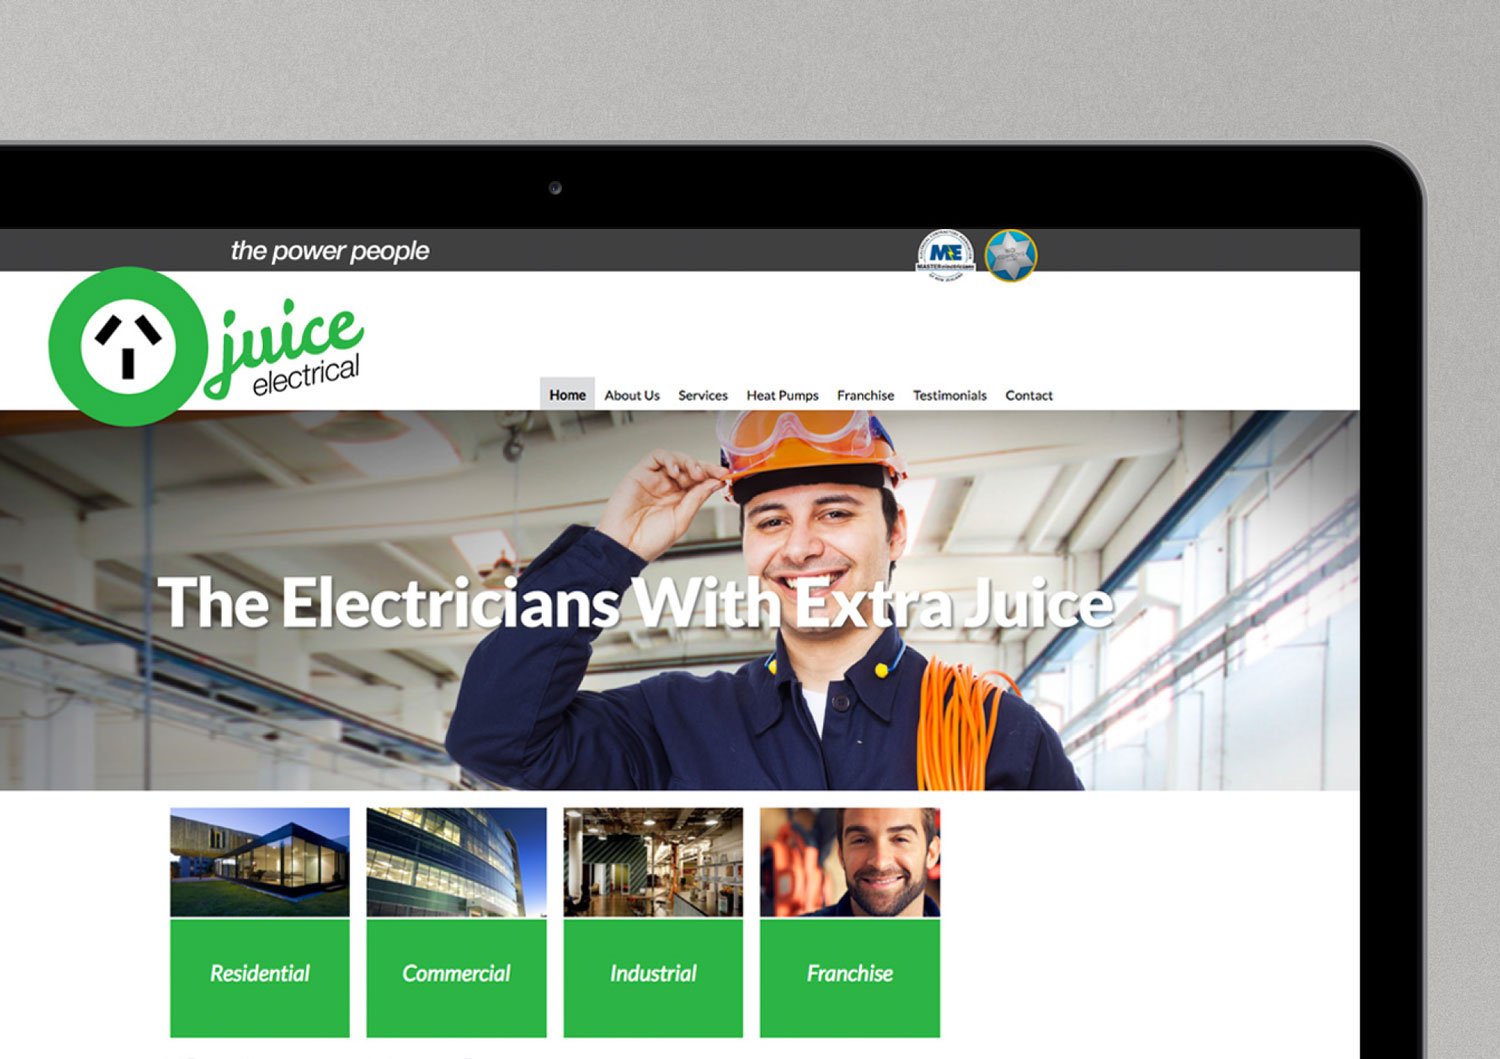 Juice electrical website